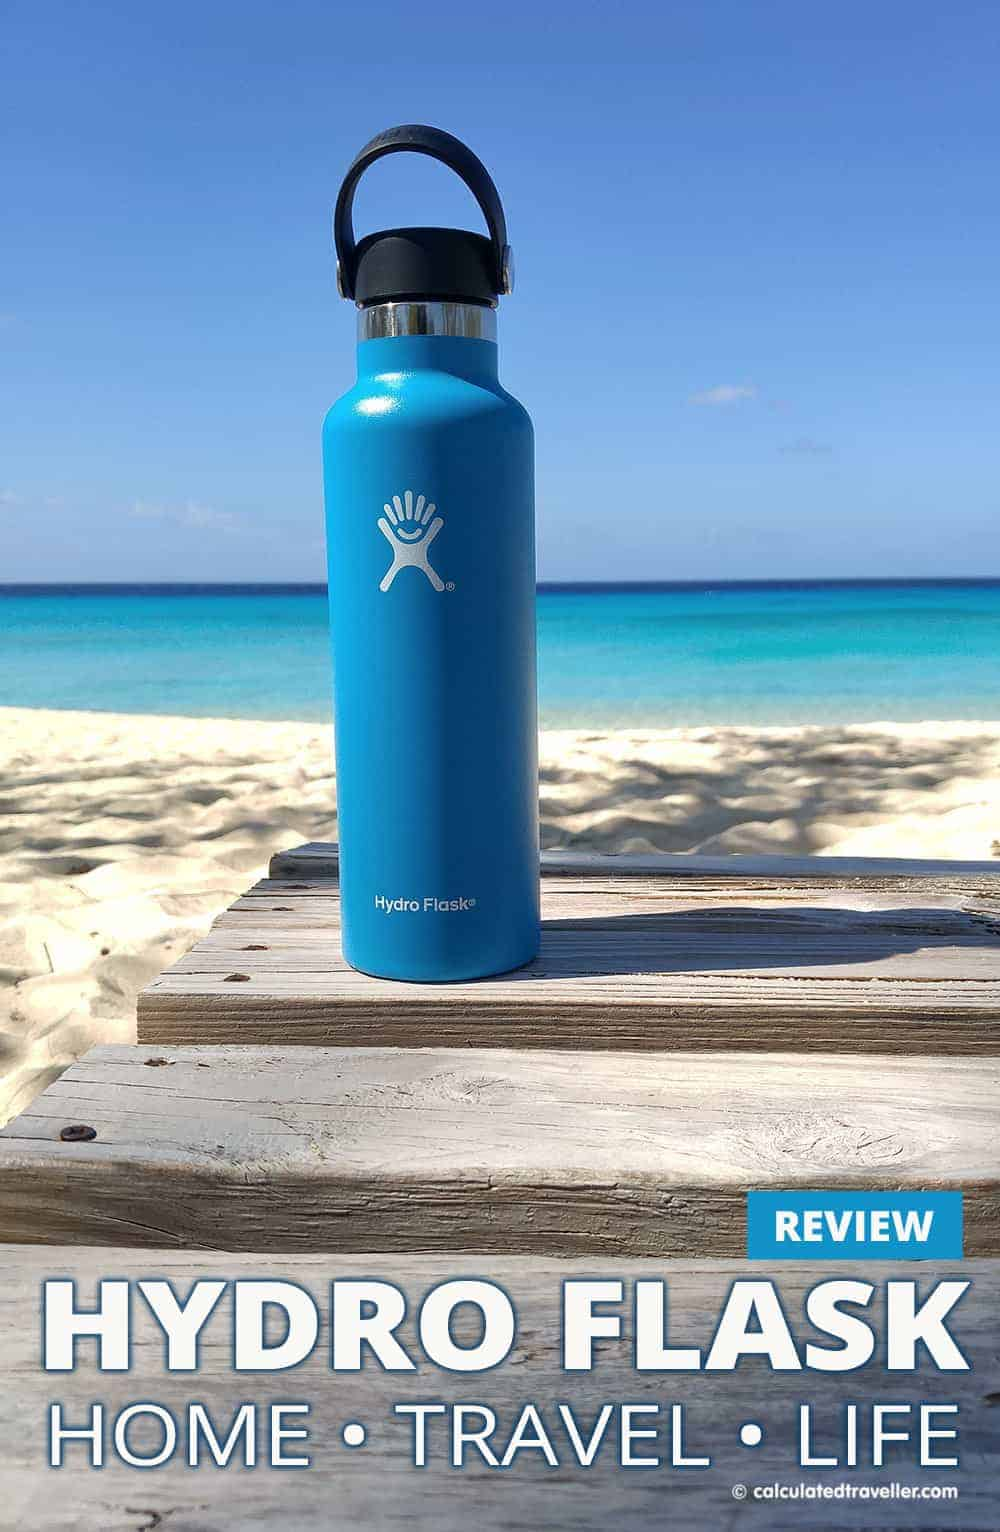 Hydro Flask Review. Home-Life and Travel-Life Hydration when you want to keep hot things hot and cold things cold by Calculated Traveller